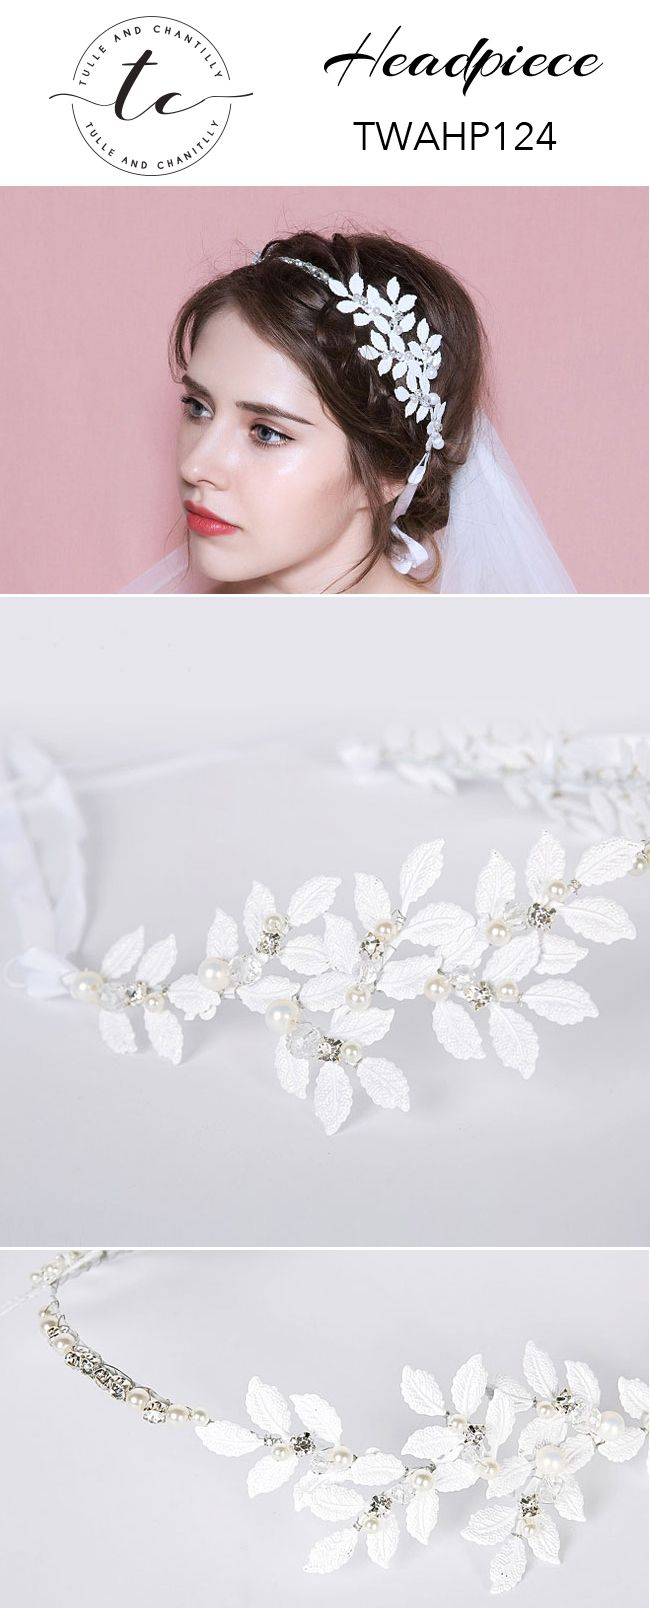 White Wedding Headband with Pearls Leaves TWAHP124 | Headpieces ...